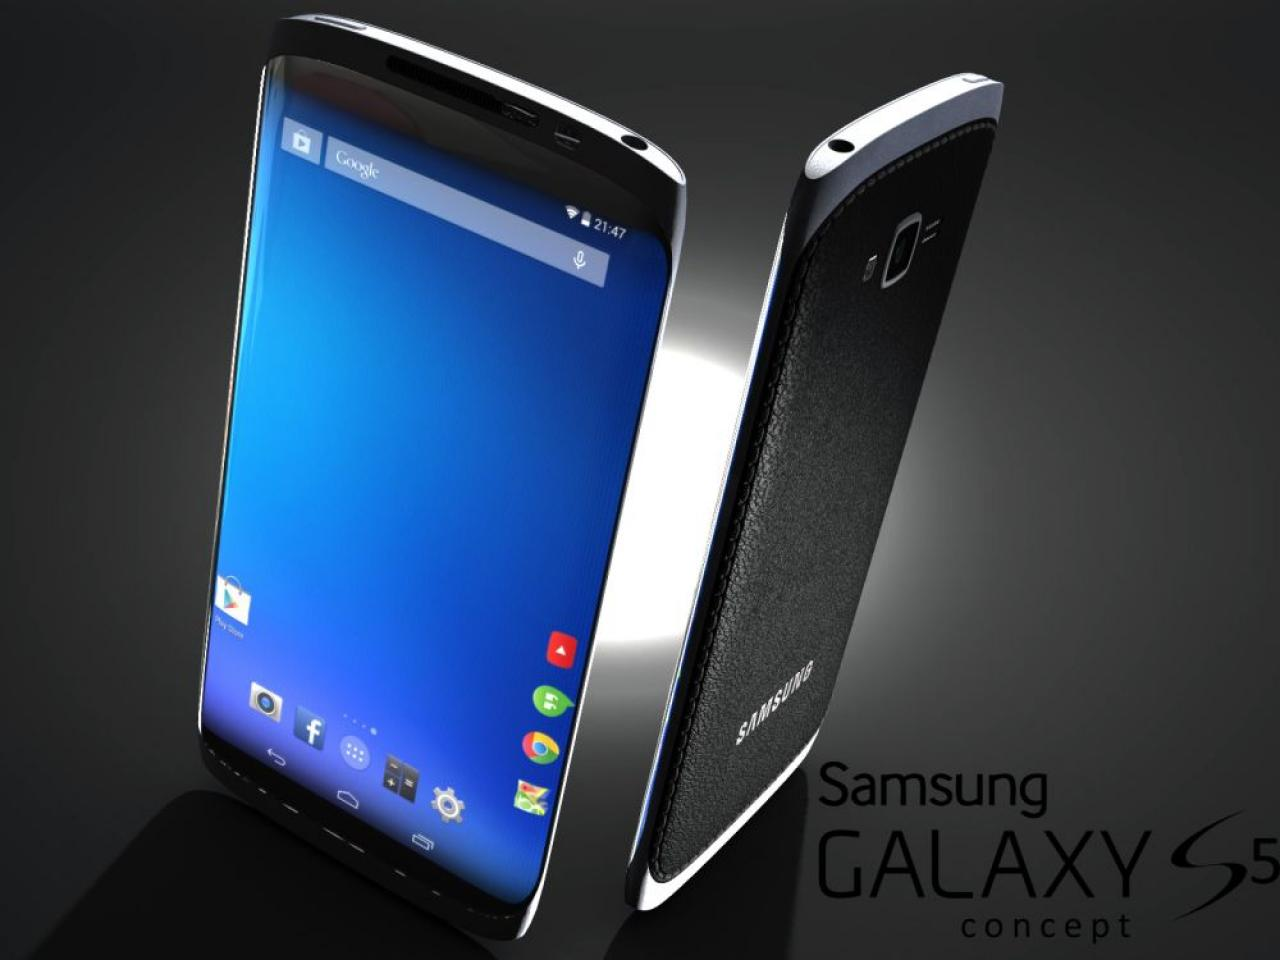 Samsung Galaxy S5 Release Date Confirmed by VP: End of April, Iris